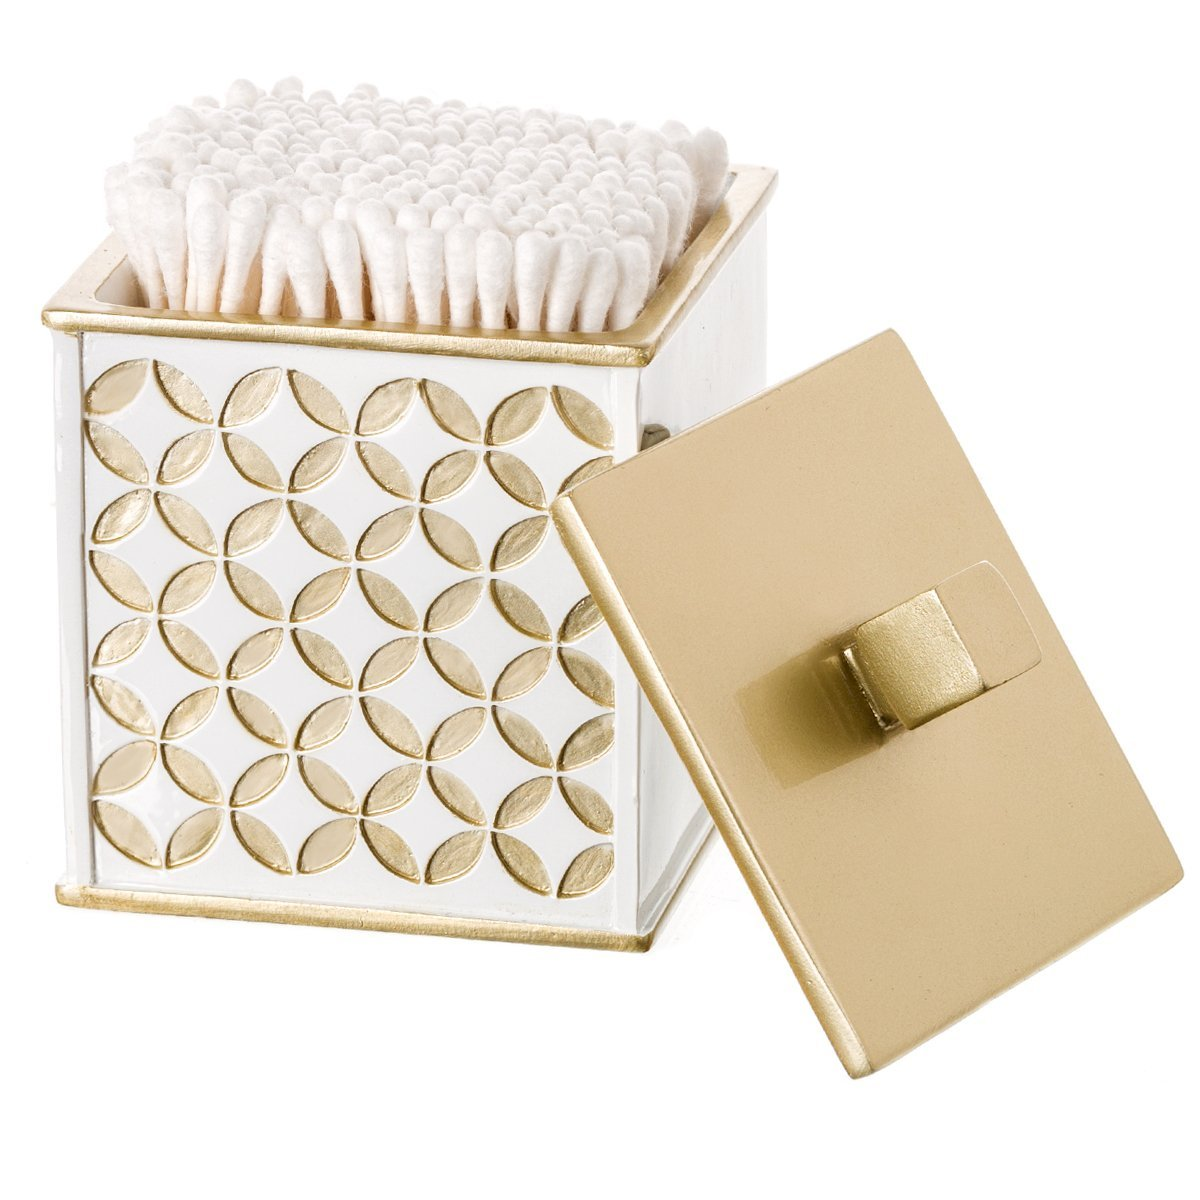 Creative Scents Diamond Lattice Q-Tip Holder, Cotton Ball Jar, Resin Cotton Swab Container, Decorative Bathroom Vanity Canister Jars with Lid for Q-Tips, Cotton Balls, Cosmetic Pads